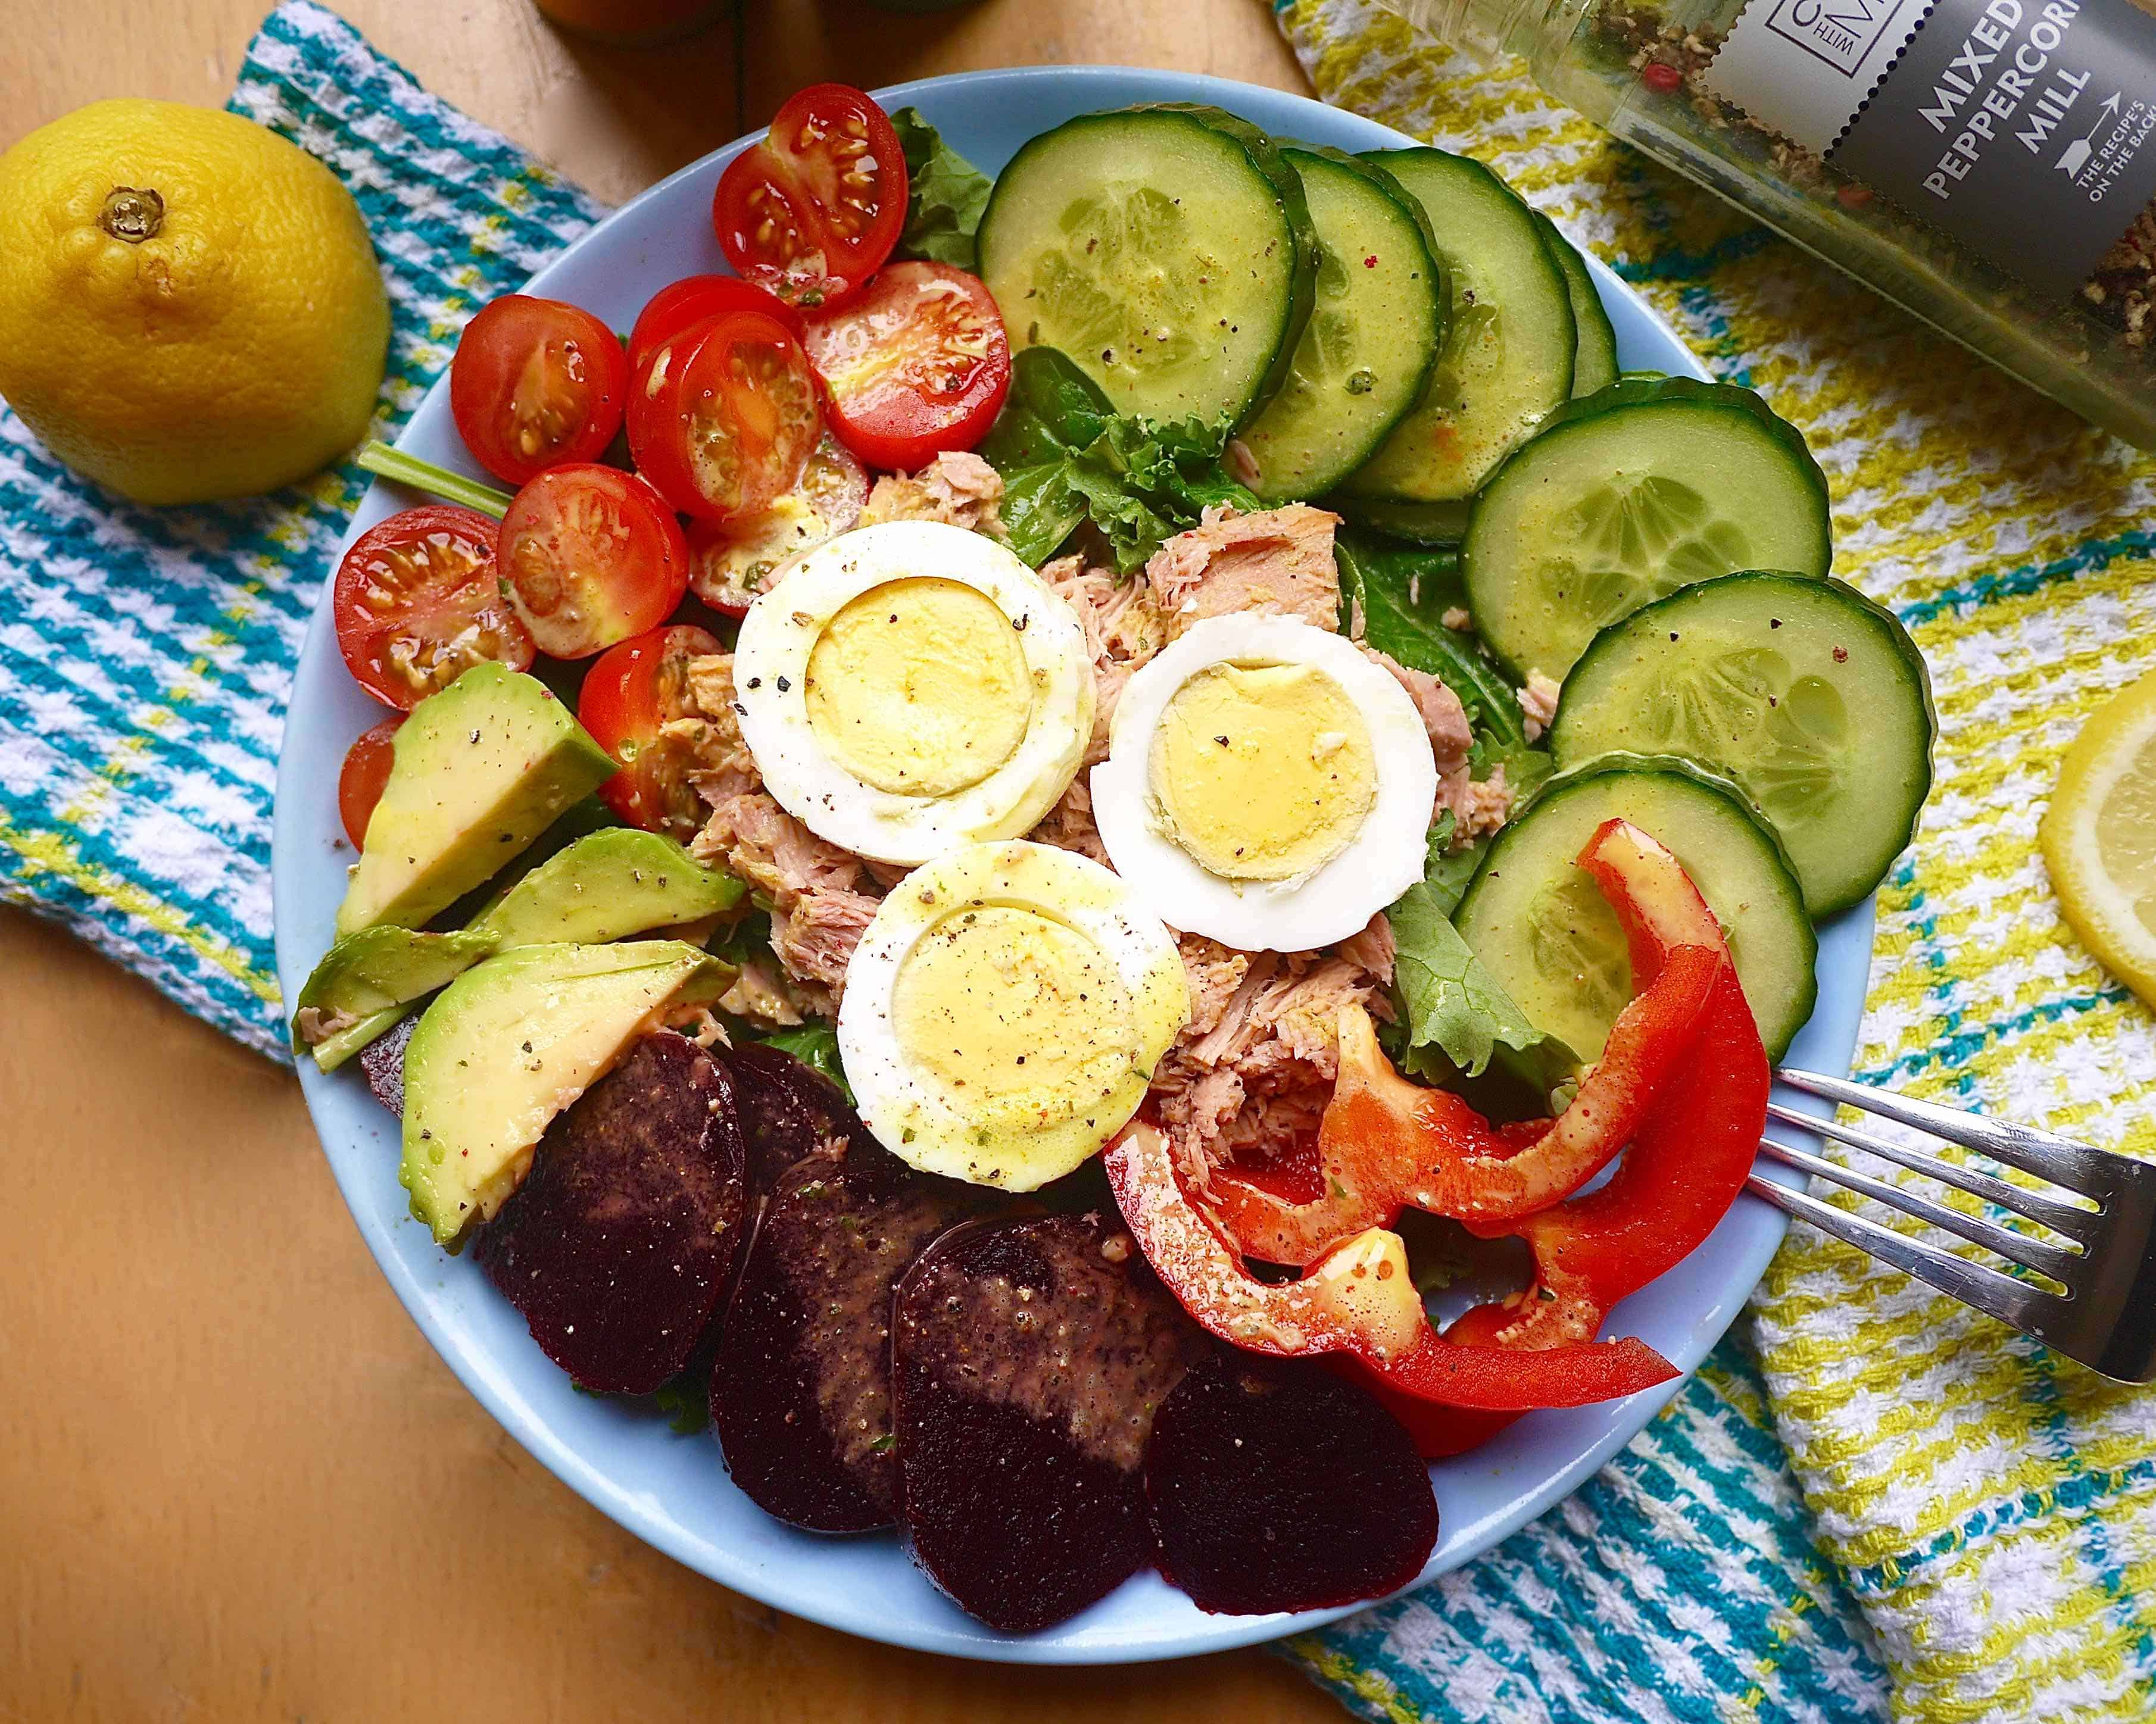 Beet, Cherry Tomato, Tuna, and Egg Salad with Creamy Dressing (paleo, GF) | Perchance to Cook, www.perchancetocook.com